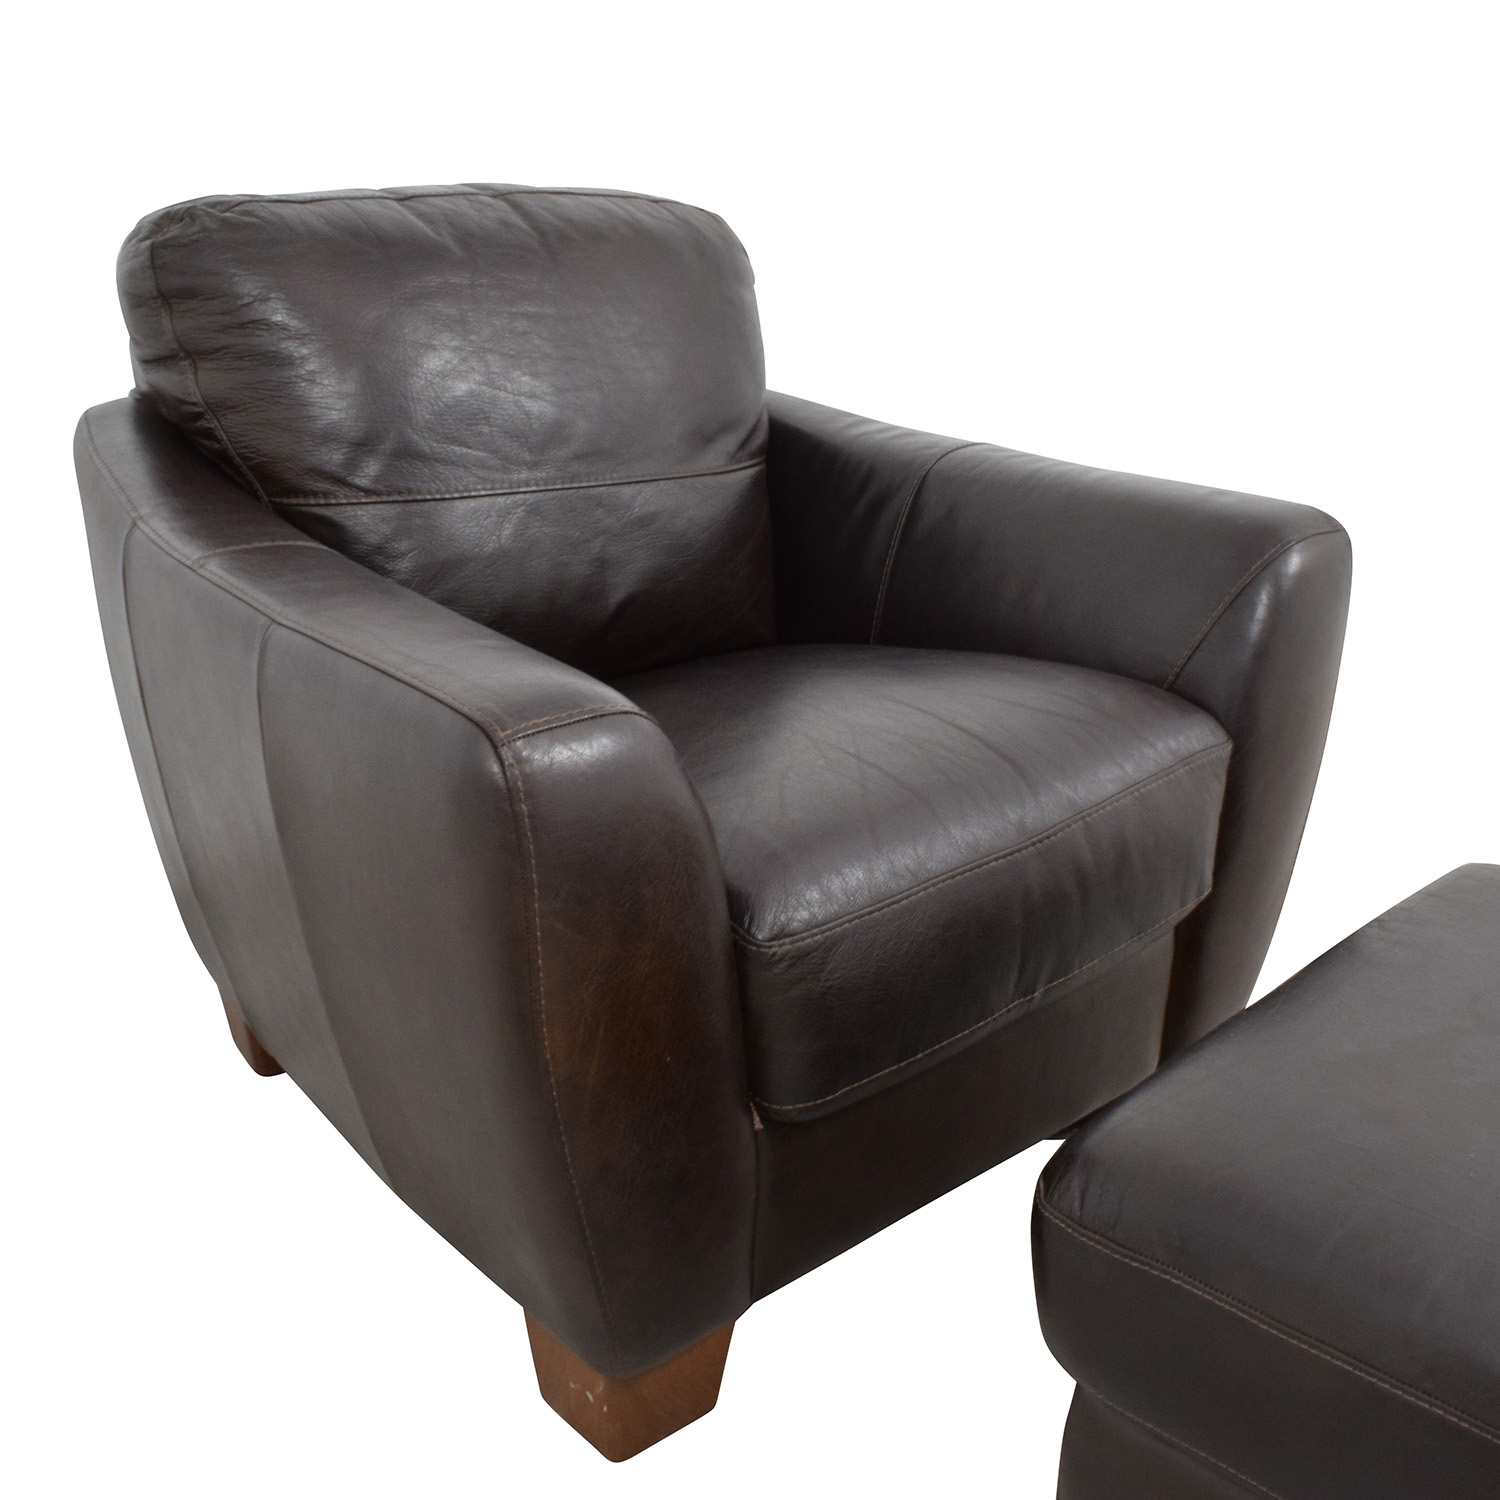 sofitalia leather sofa henredon sofas for sale 64 off dark brown armchair